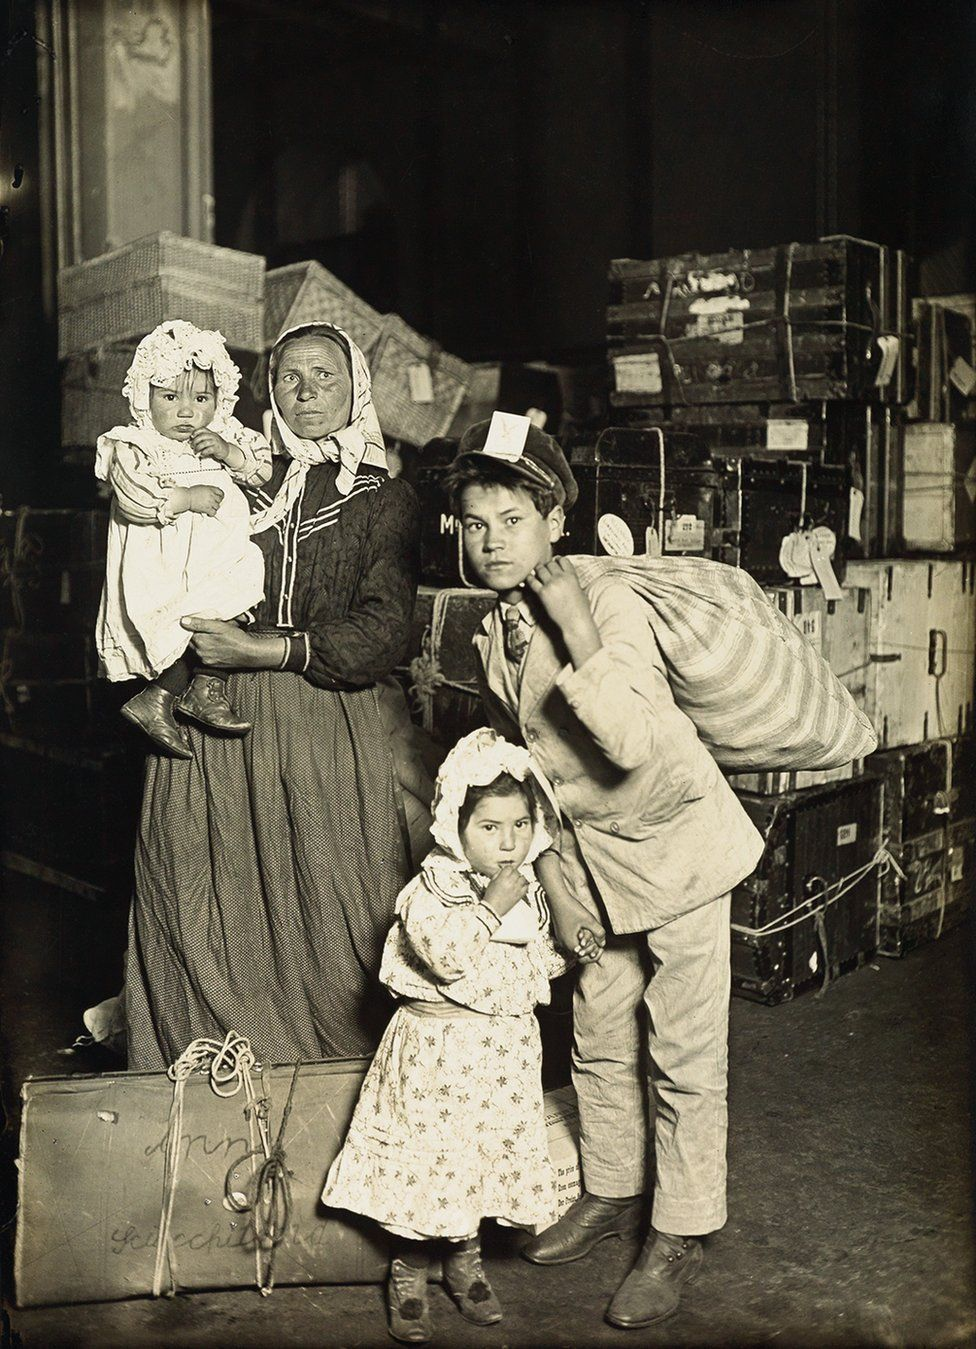 A family together with their bags.